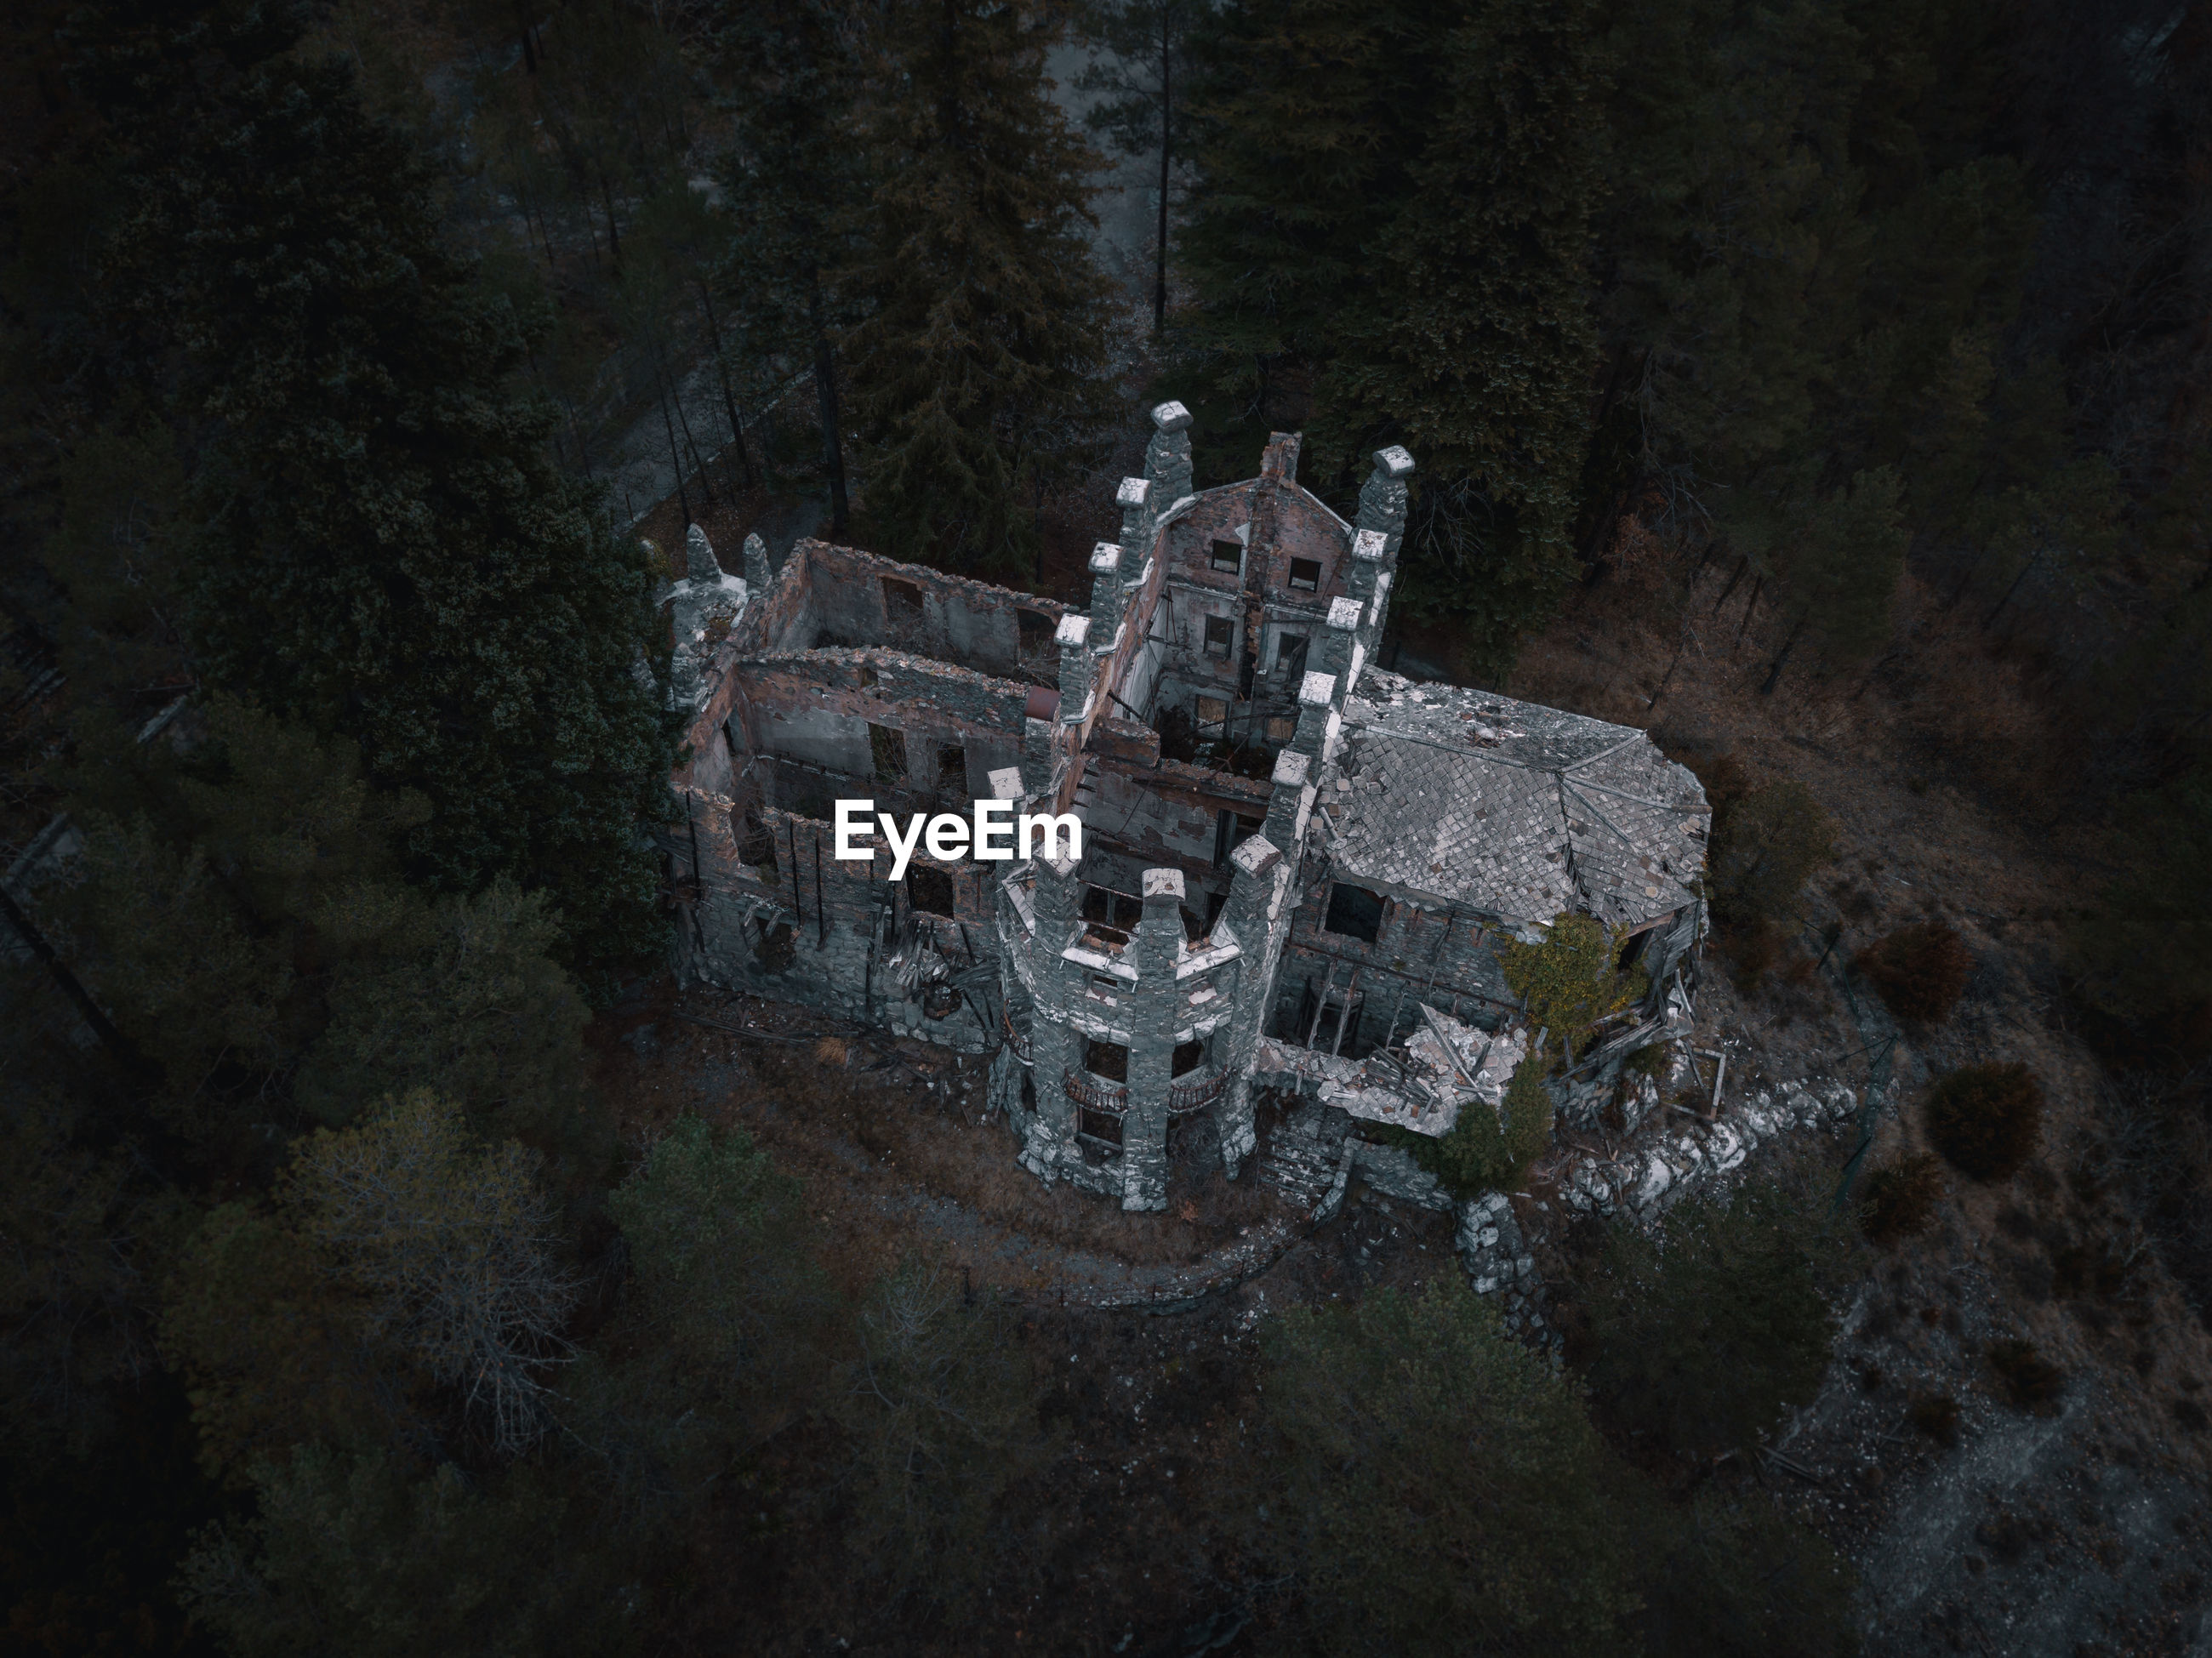 HIGH ANGLE VIEW OF OLD BUILDING IN FOREST